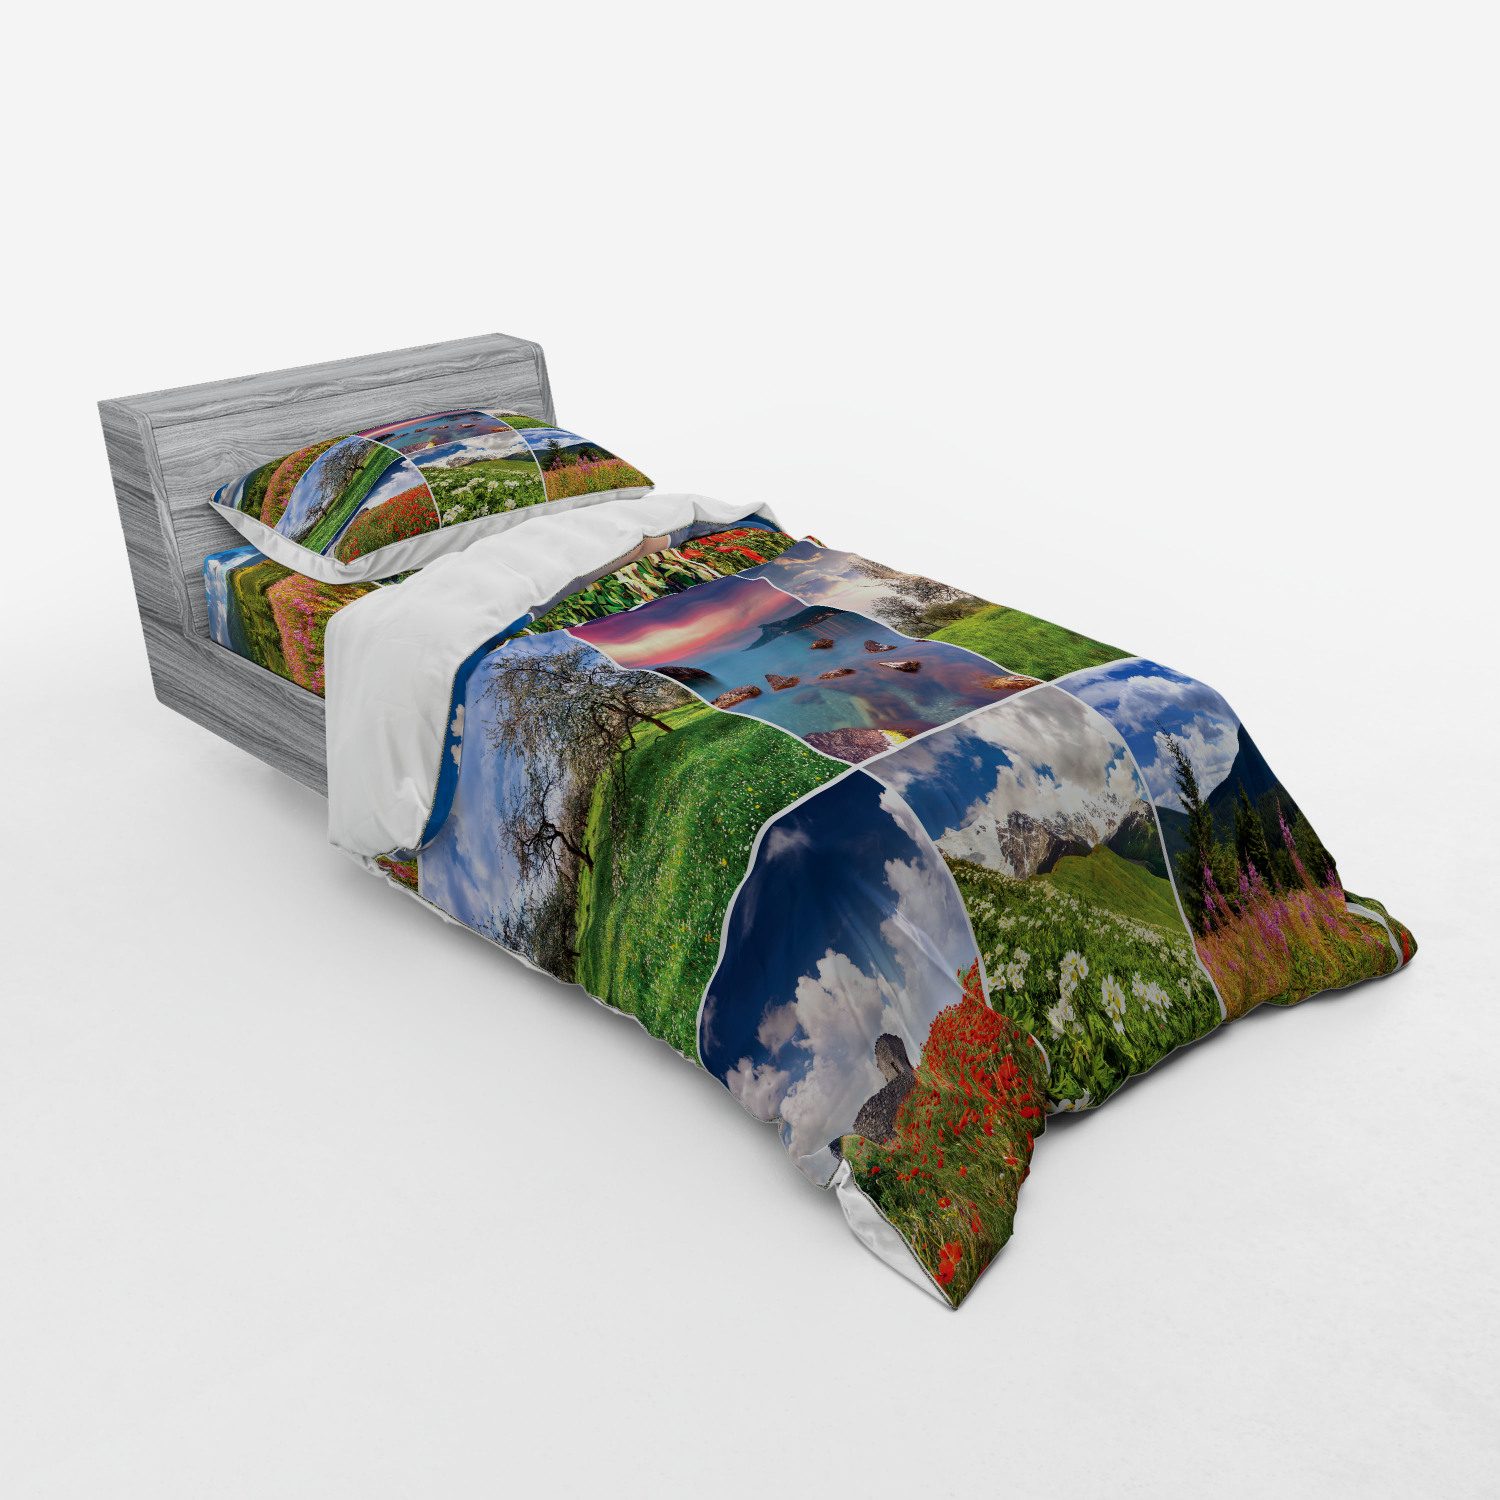 thumbnail 193 - Ambesonne Summer Bedding Set Duvet Cover Sham Fitted Sheet in 3 Sizes